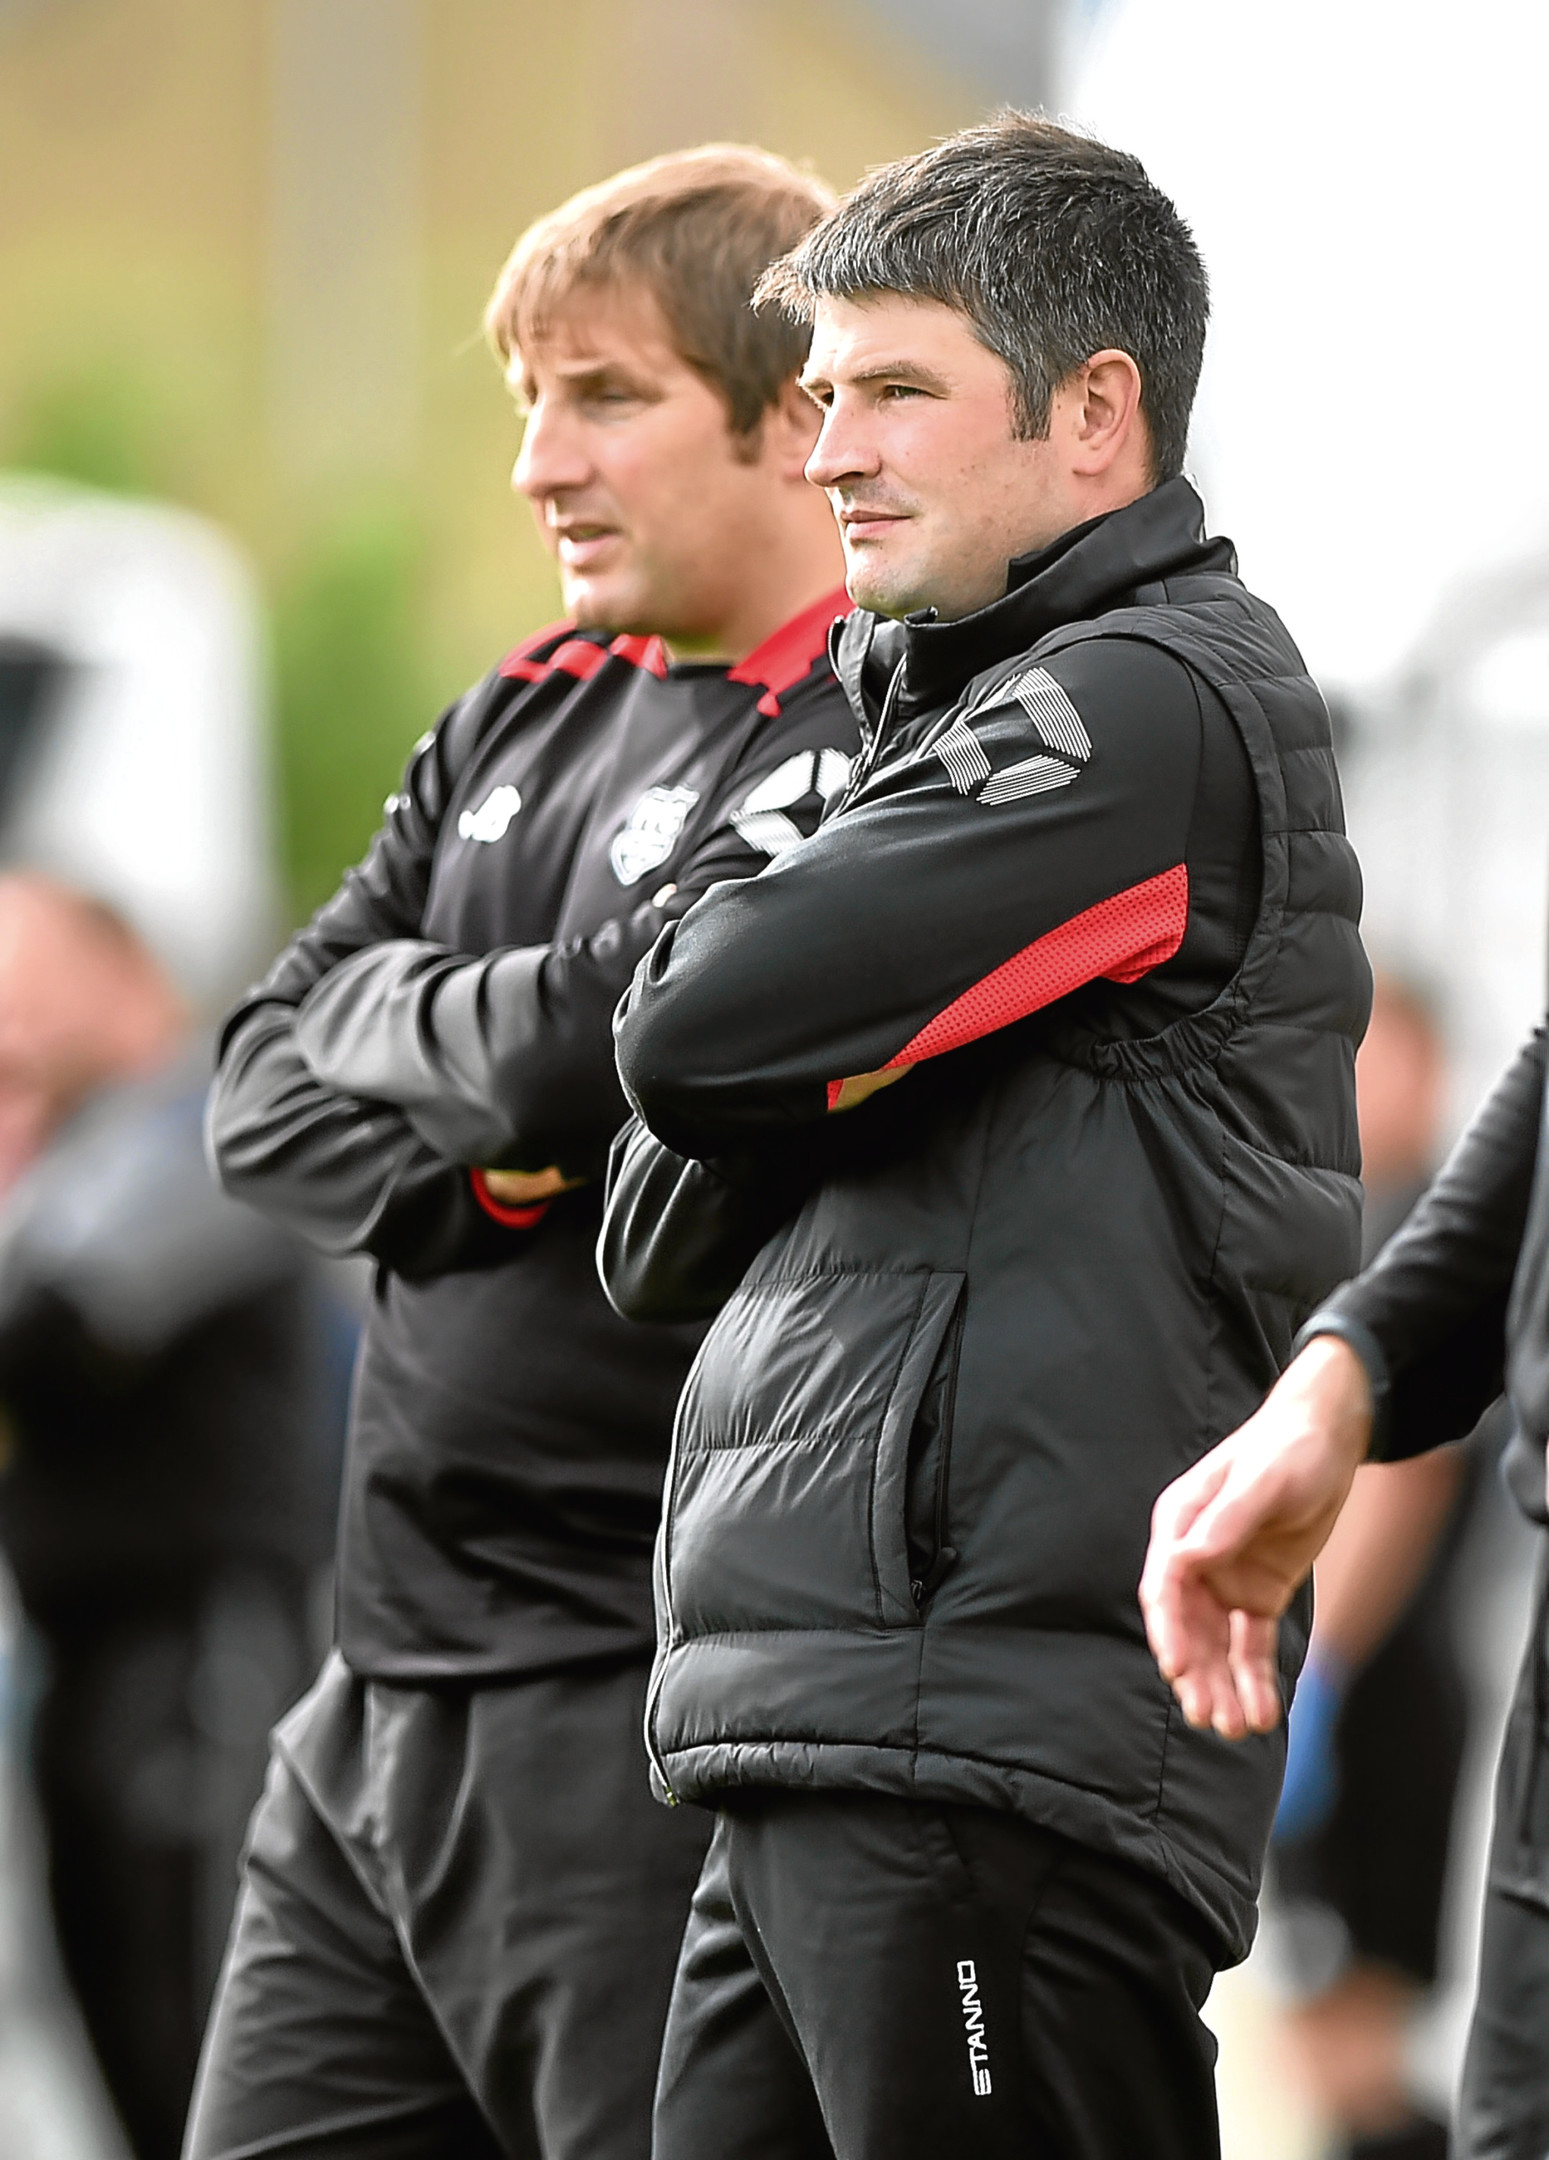 Highland League - Keith FC v Fraserburgh FC (0-3) Stock picture - Fraserburgh Manager Mark Cowie (right) and coach James Duthie. Picture by COLIN RENNIE   August 5, 2017.